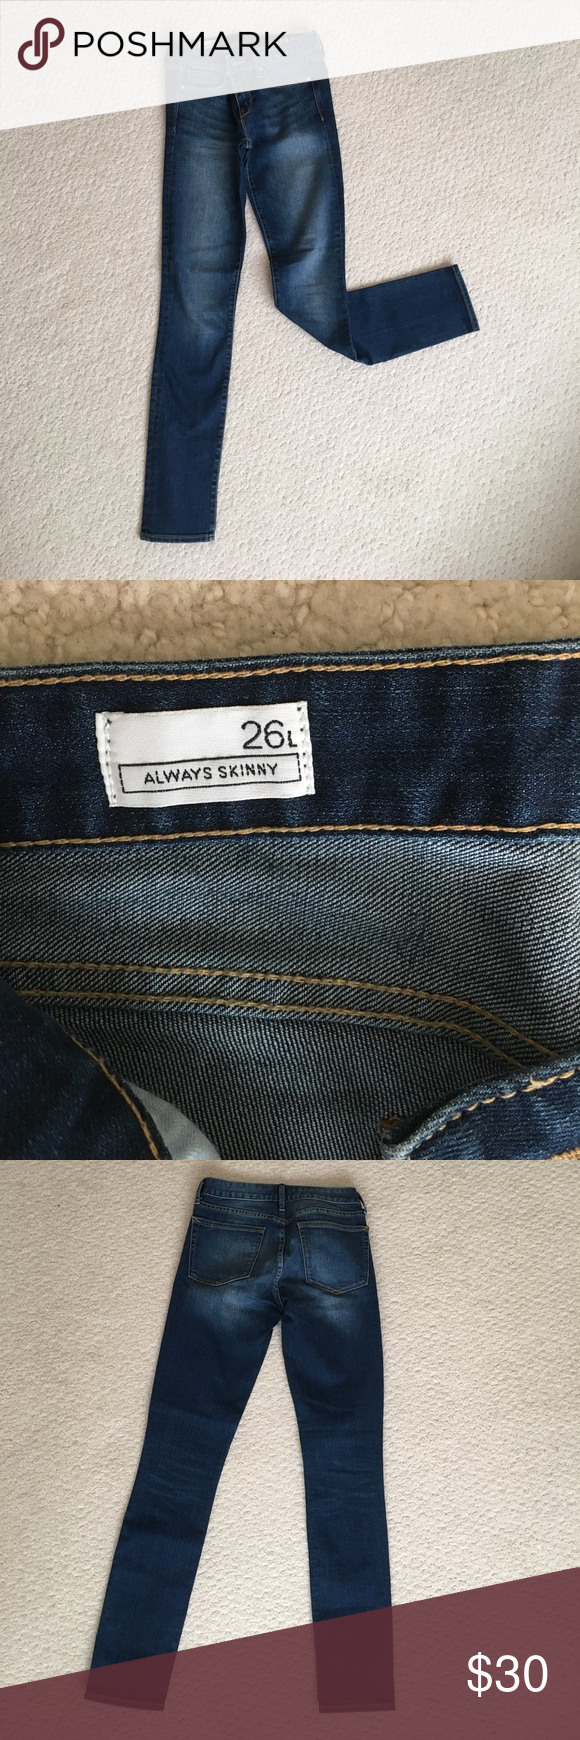 Gap Always Skinny Jeans Brand new Gap jeans! Medium wash. Never worn. Size 26 long. Perfect condition. GAP Jeans Skinny